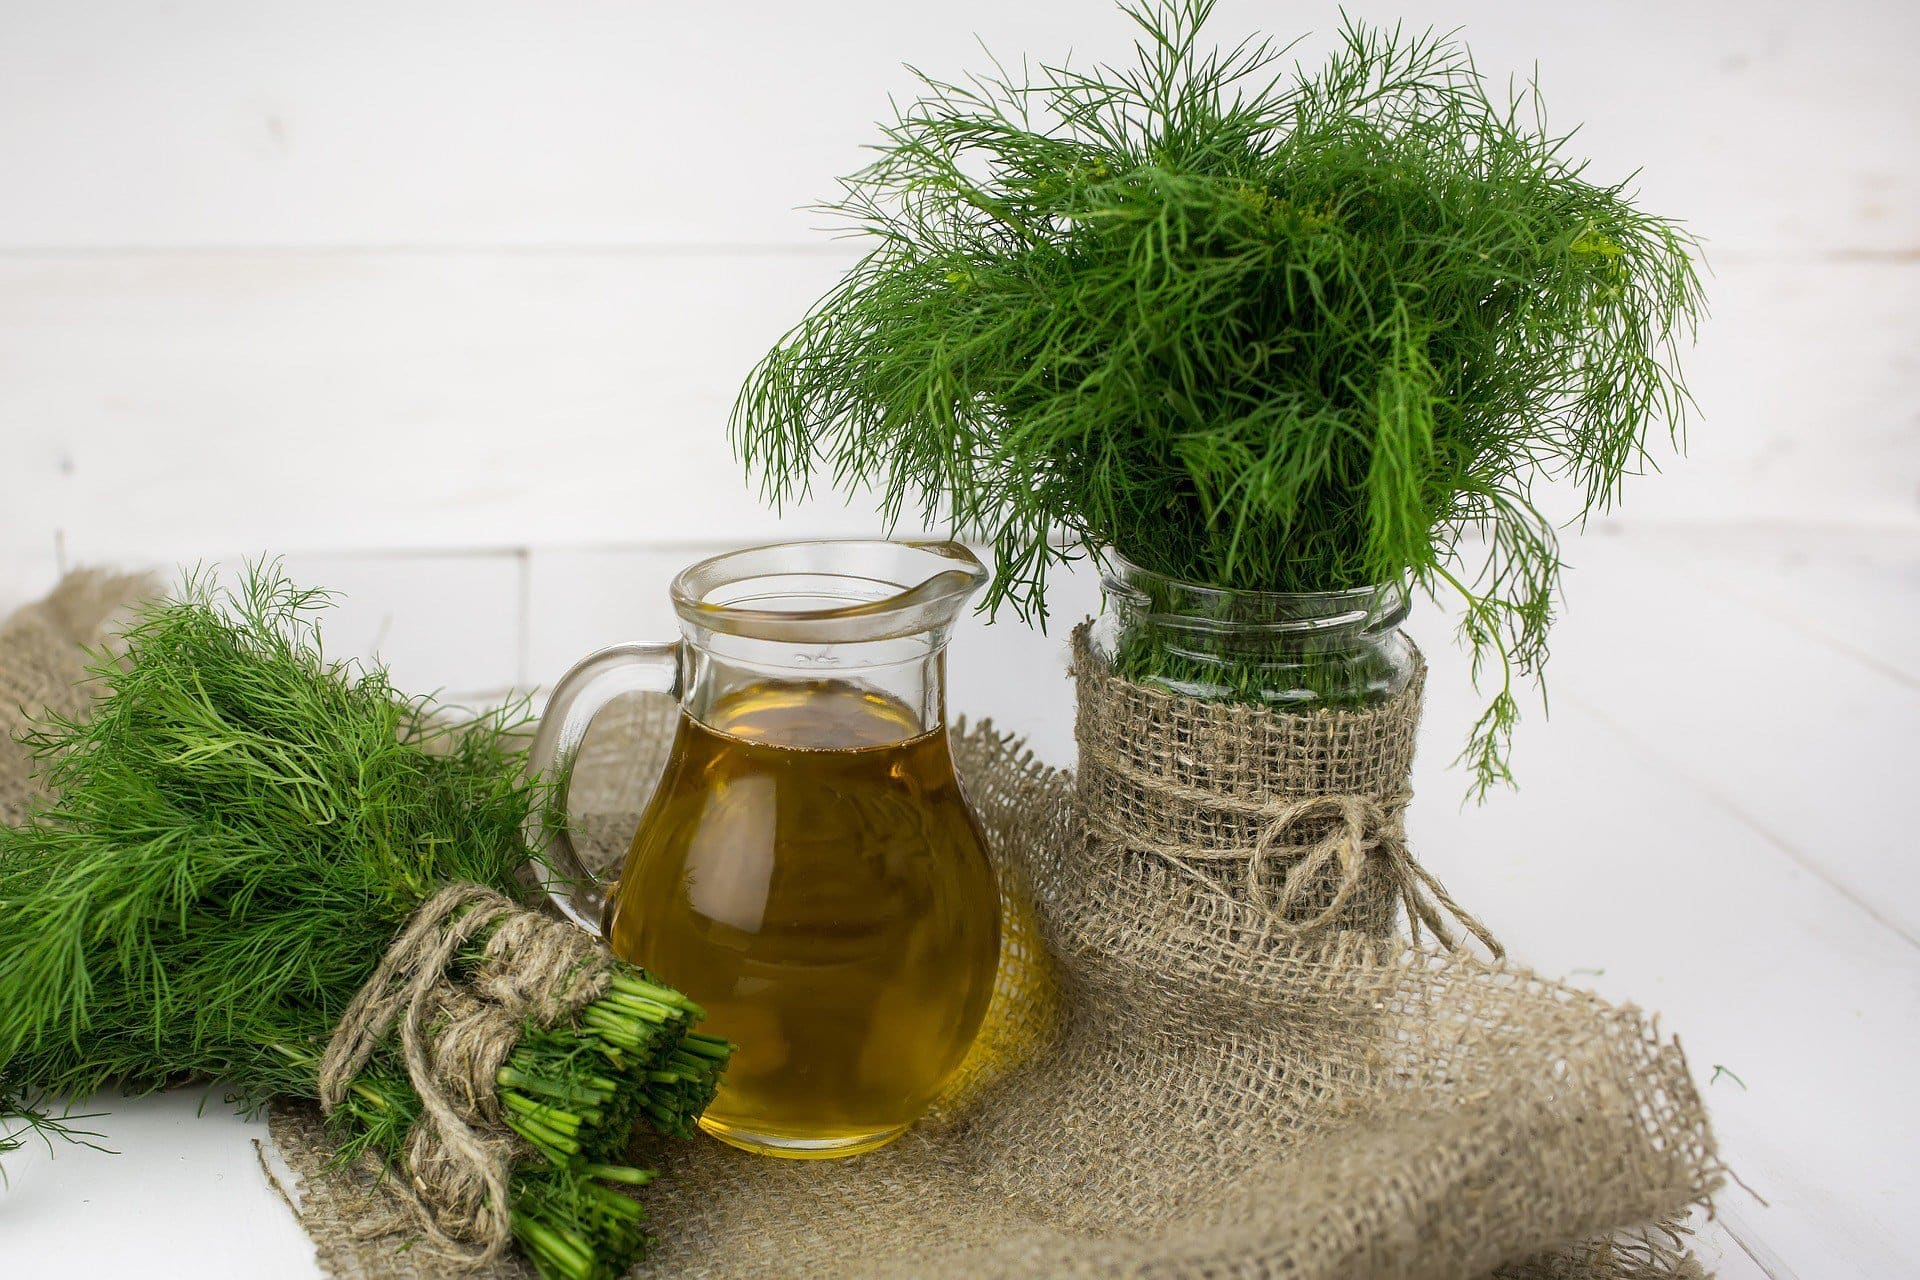 dill safe herbs for dogs